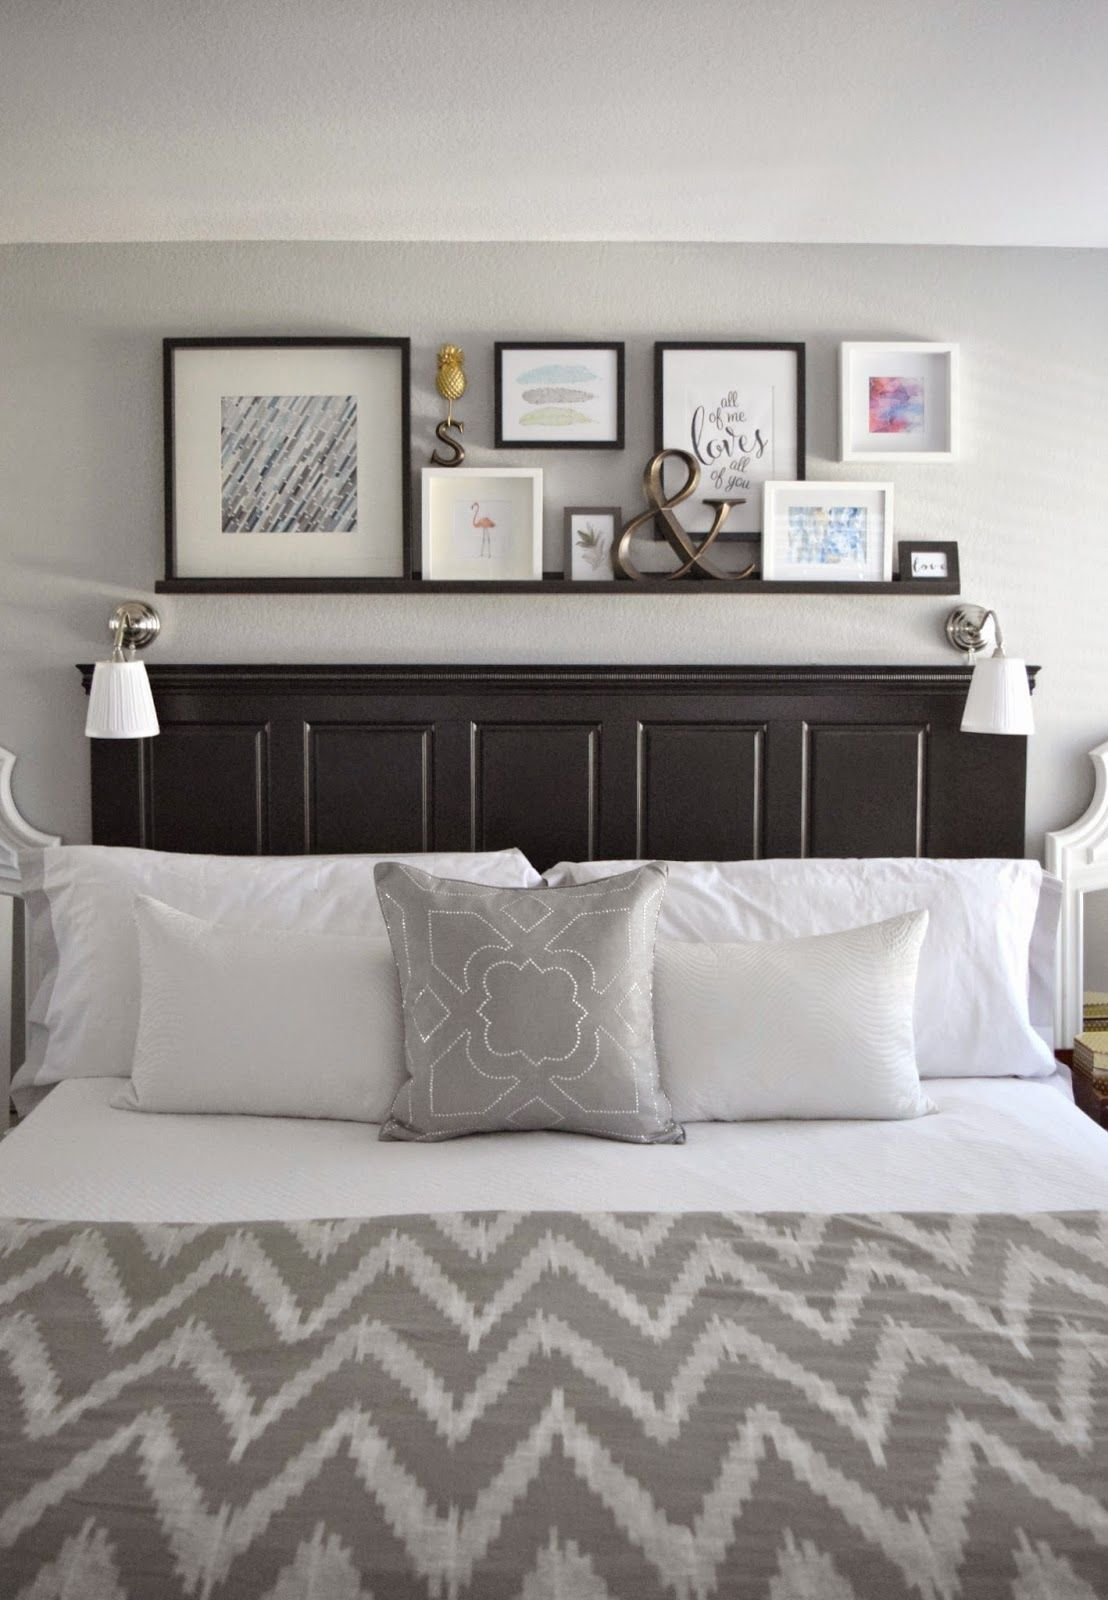 20 Decorating Tricks for Your Bedroom | Home Decor ...